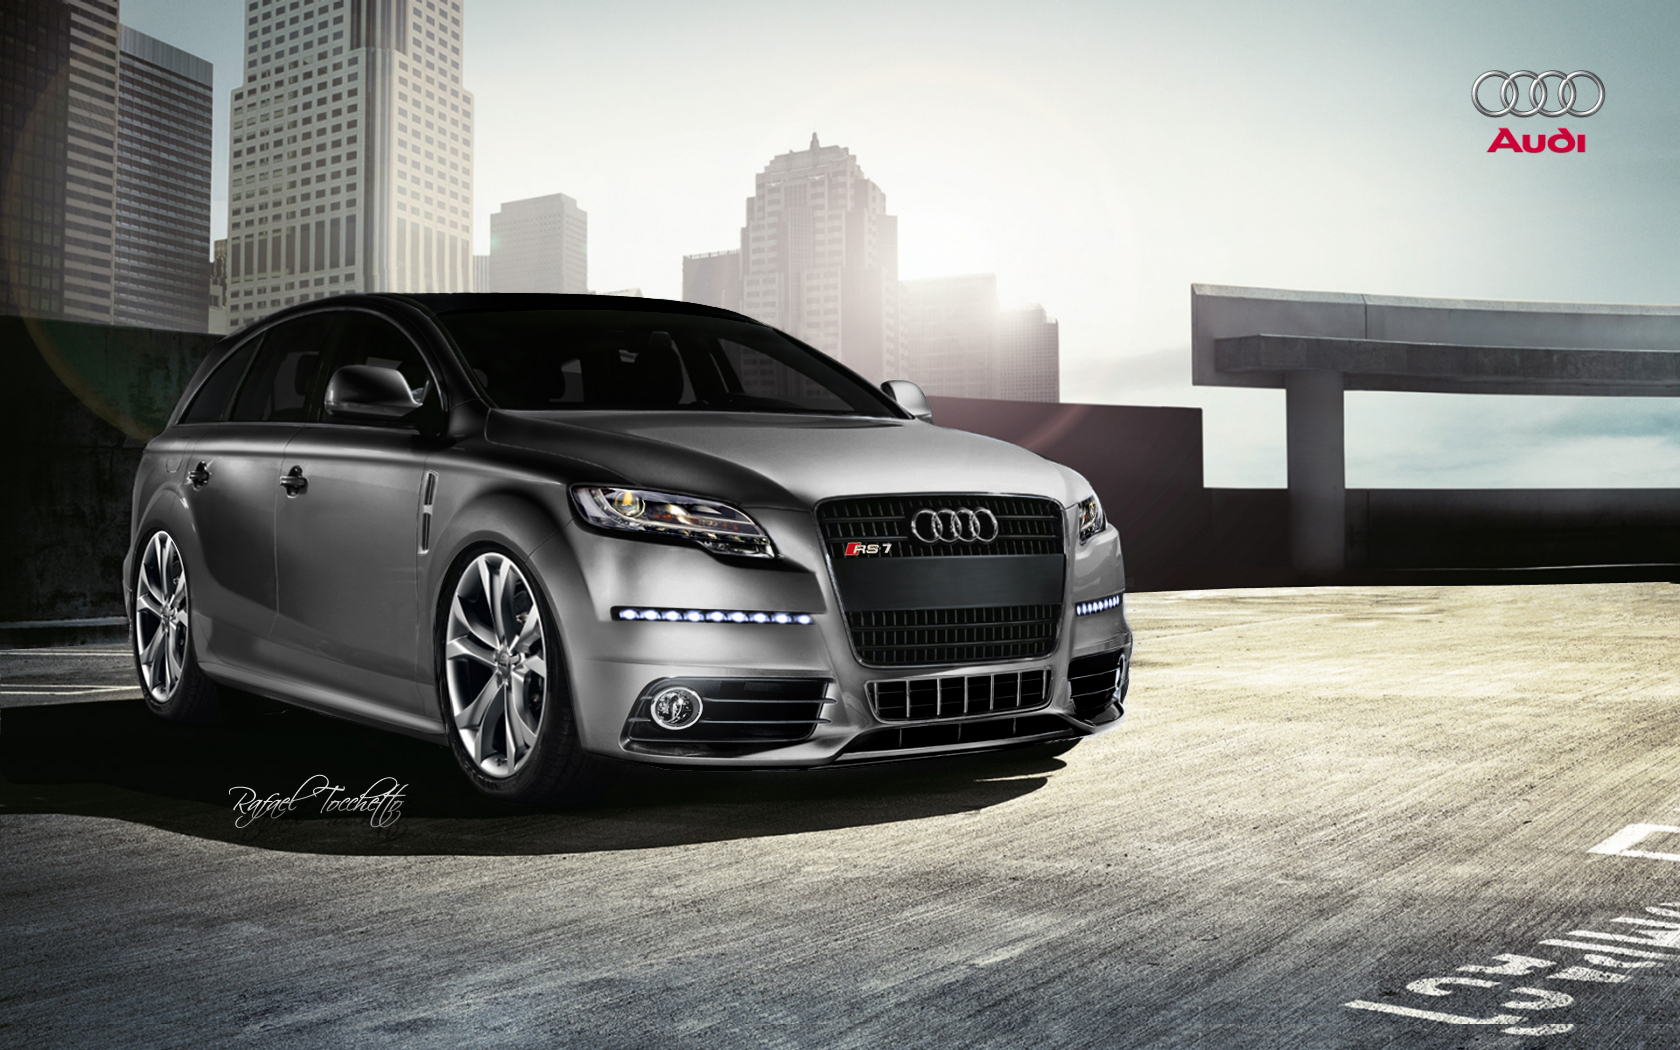 Audi Images Audi Rs7 Hd Wallpaper And Background Photos 11786014